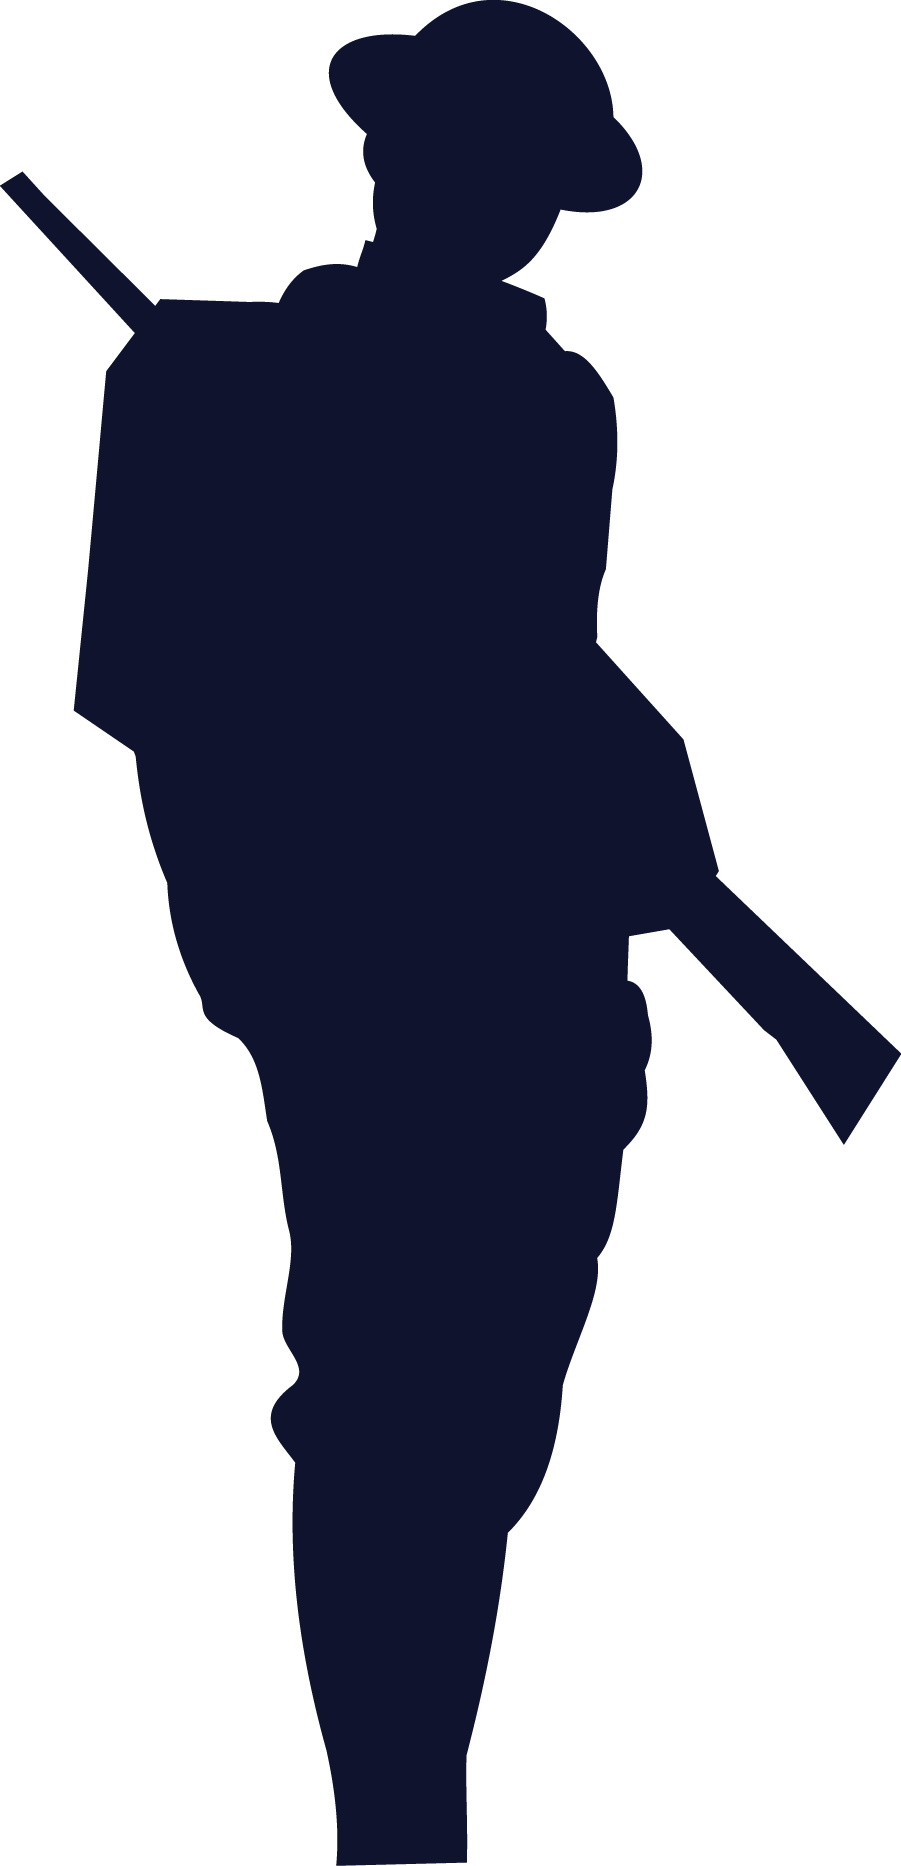 Image Result For Ww1 Soldier Silhouette Soldier Silhouette Remembrance Day Art Soldier Drawing